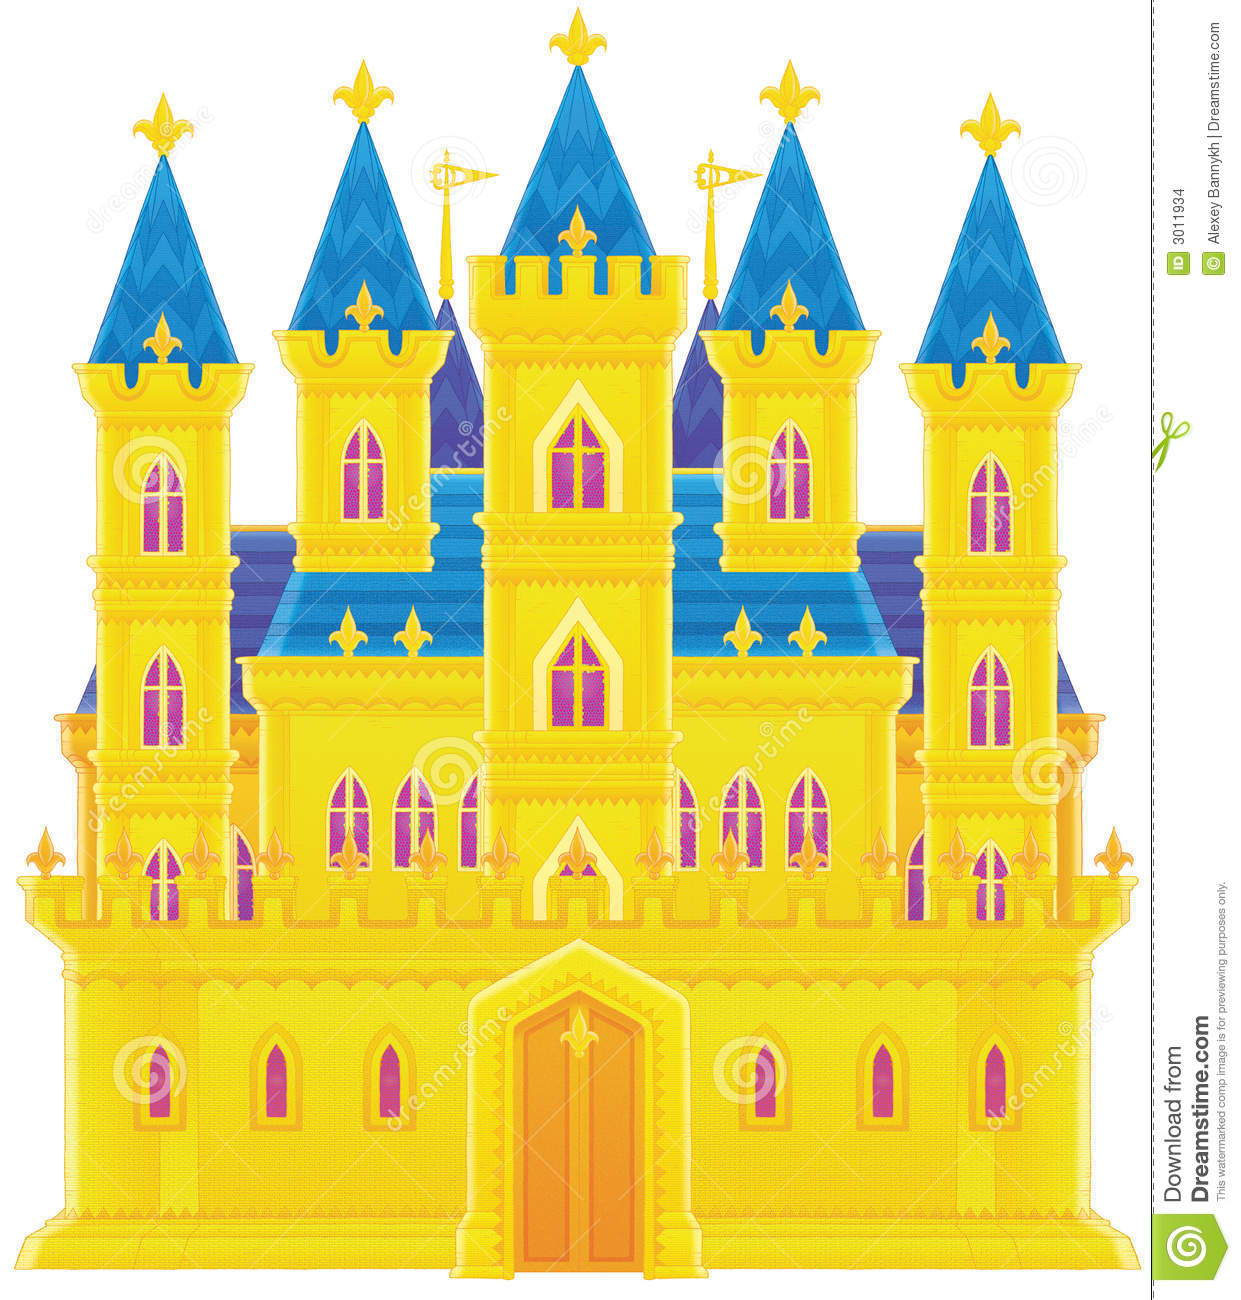 Palace clipart #16, Download drawings